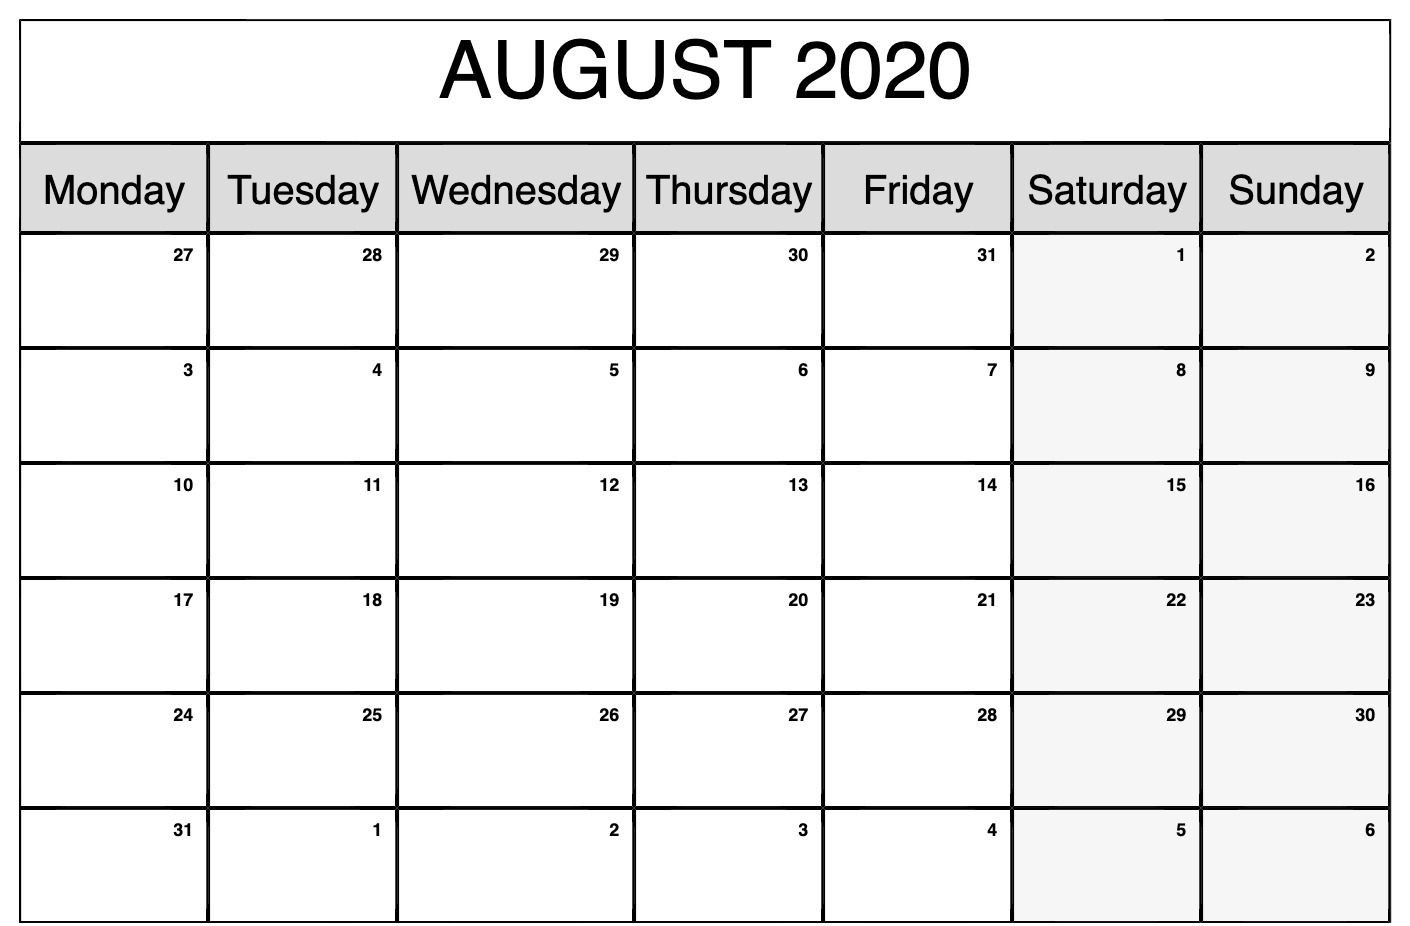 Monthly Calendar Template August 2020 | Monthly Calendars-Monthly Calendar Monday To Friday